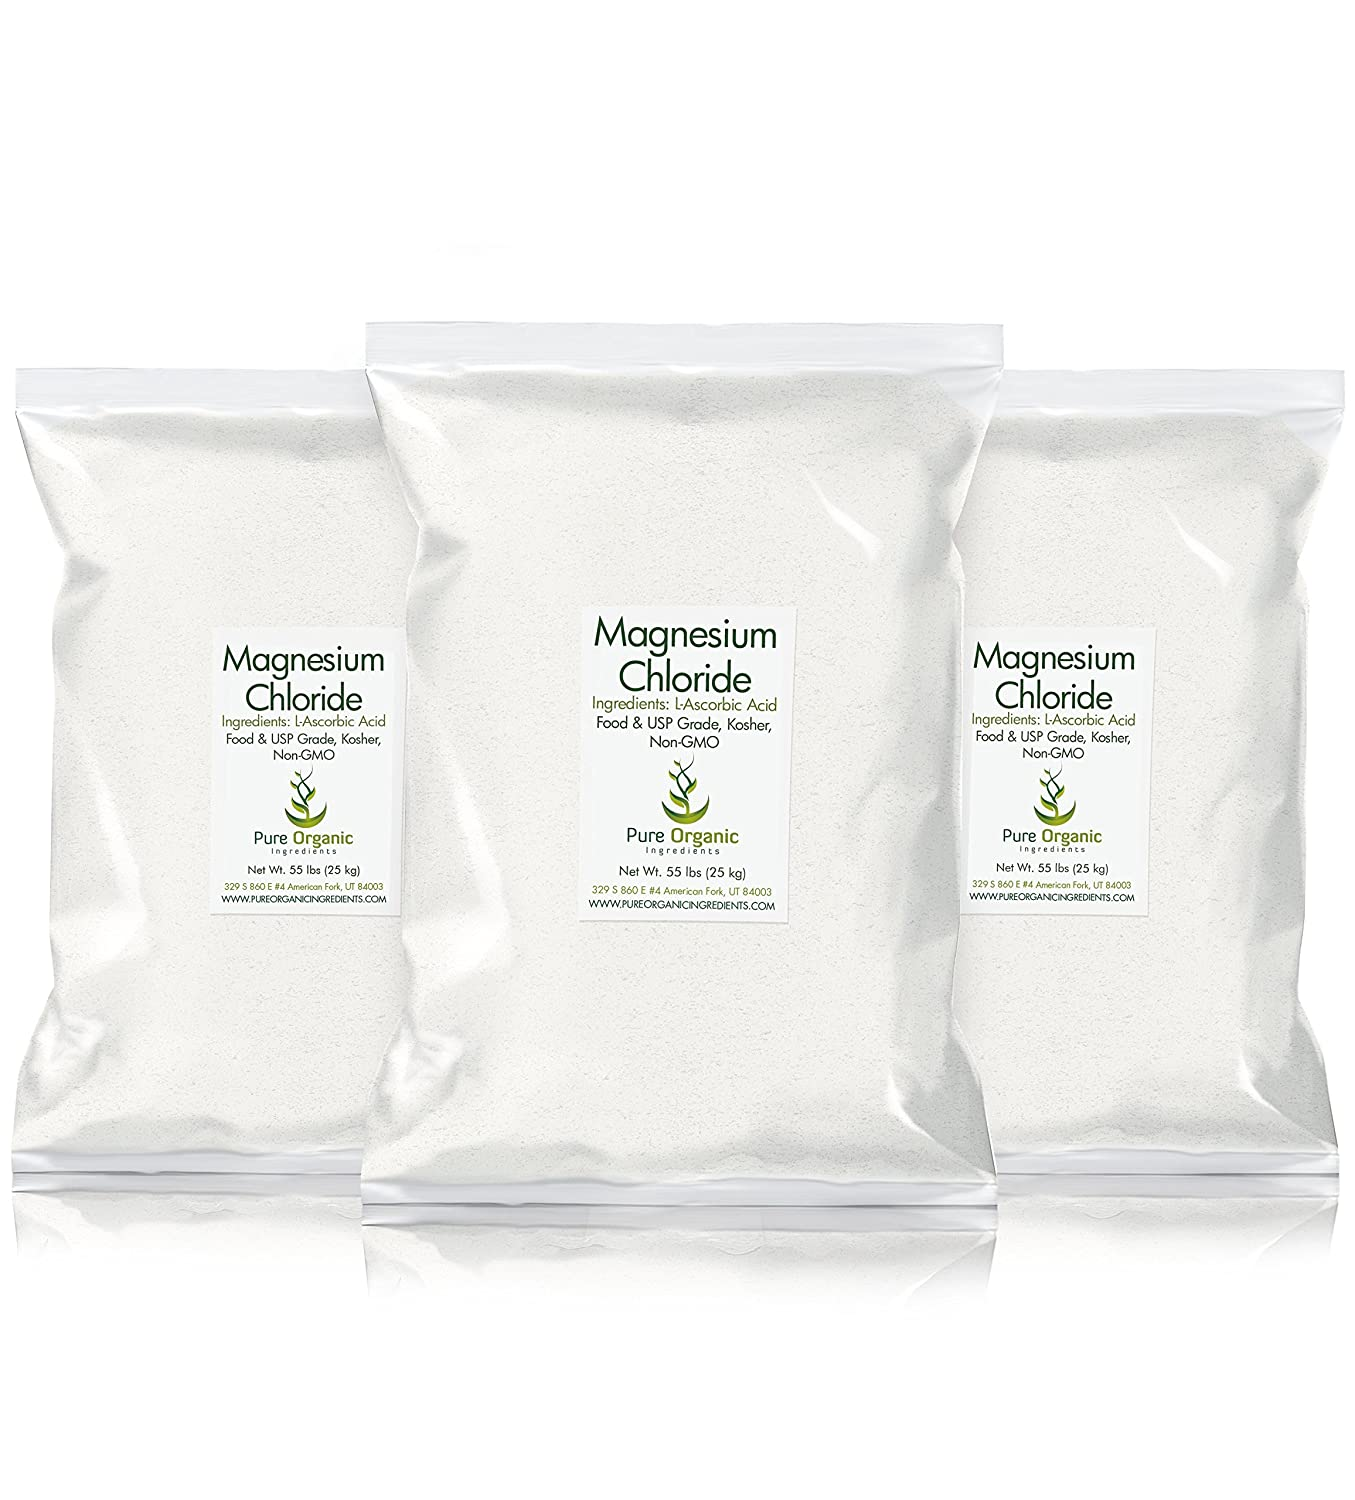 Amazon.com: Magnesium Chloride (1 lb.) by Pure Organic Ingredients, Eco-Friendly Packaging, Crystal Powder, Highest Quality, Oral Supplement, ...